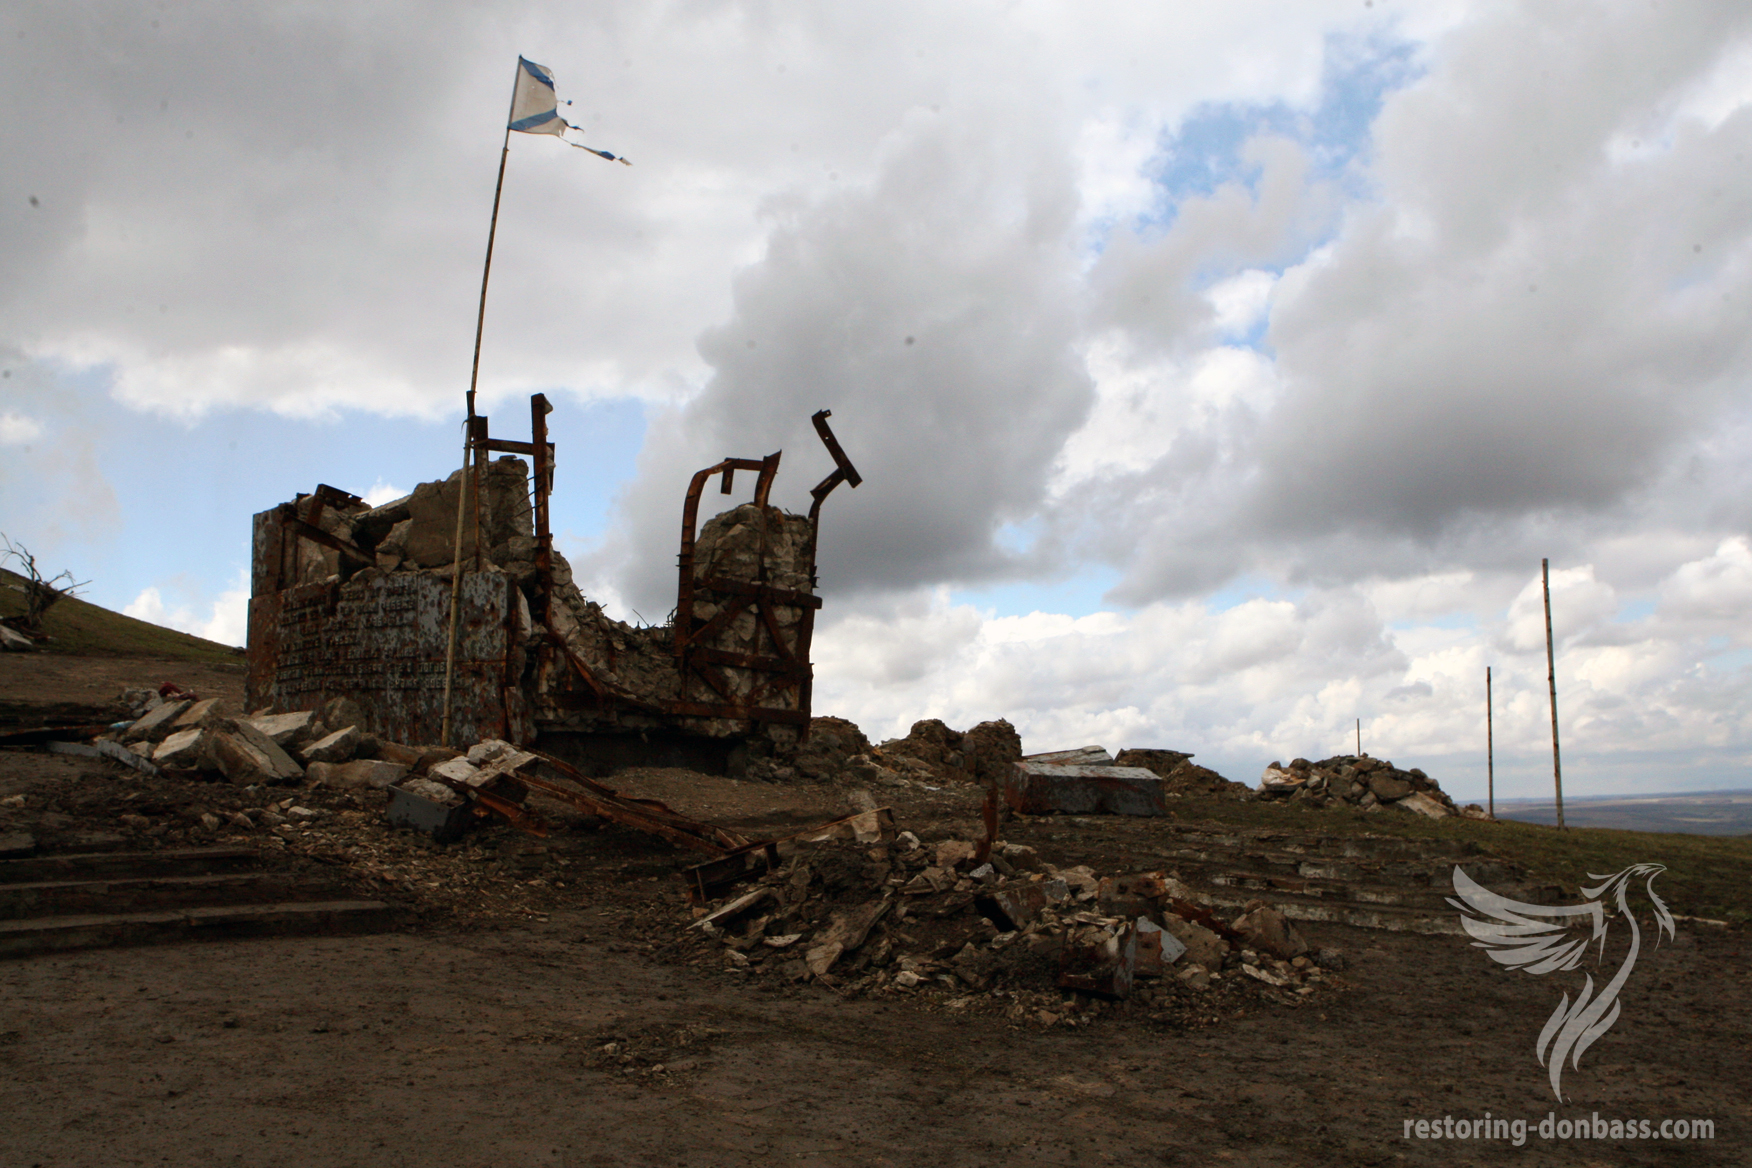 The Top Savur-Mohyla was broken by shelling, April 4, 2015